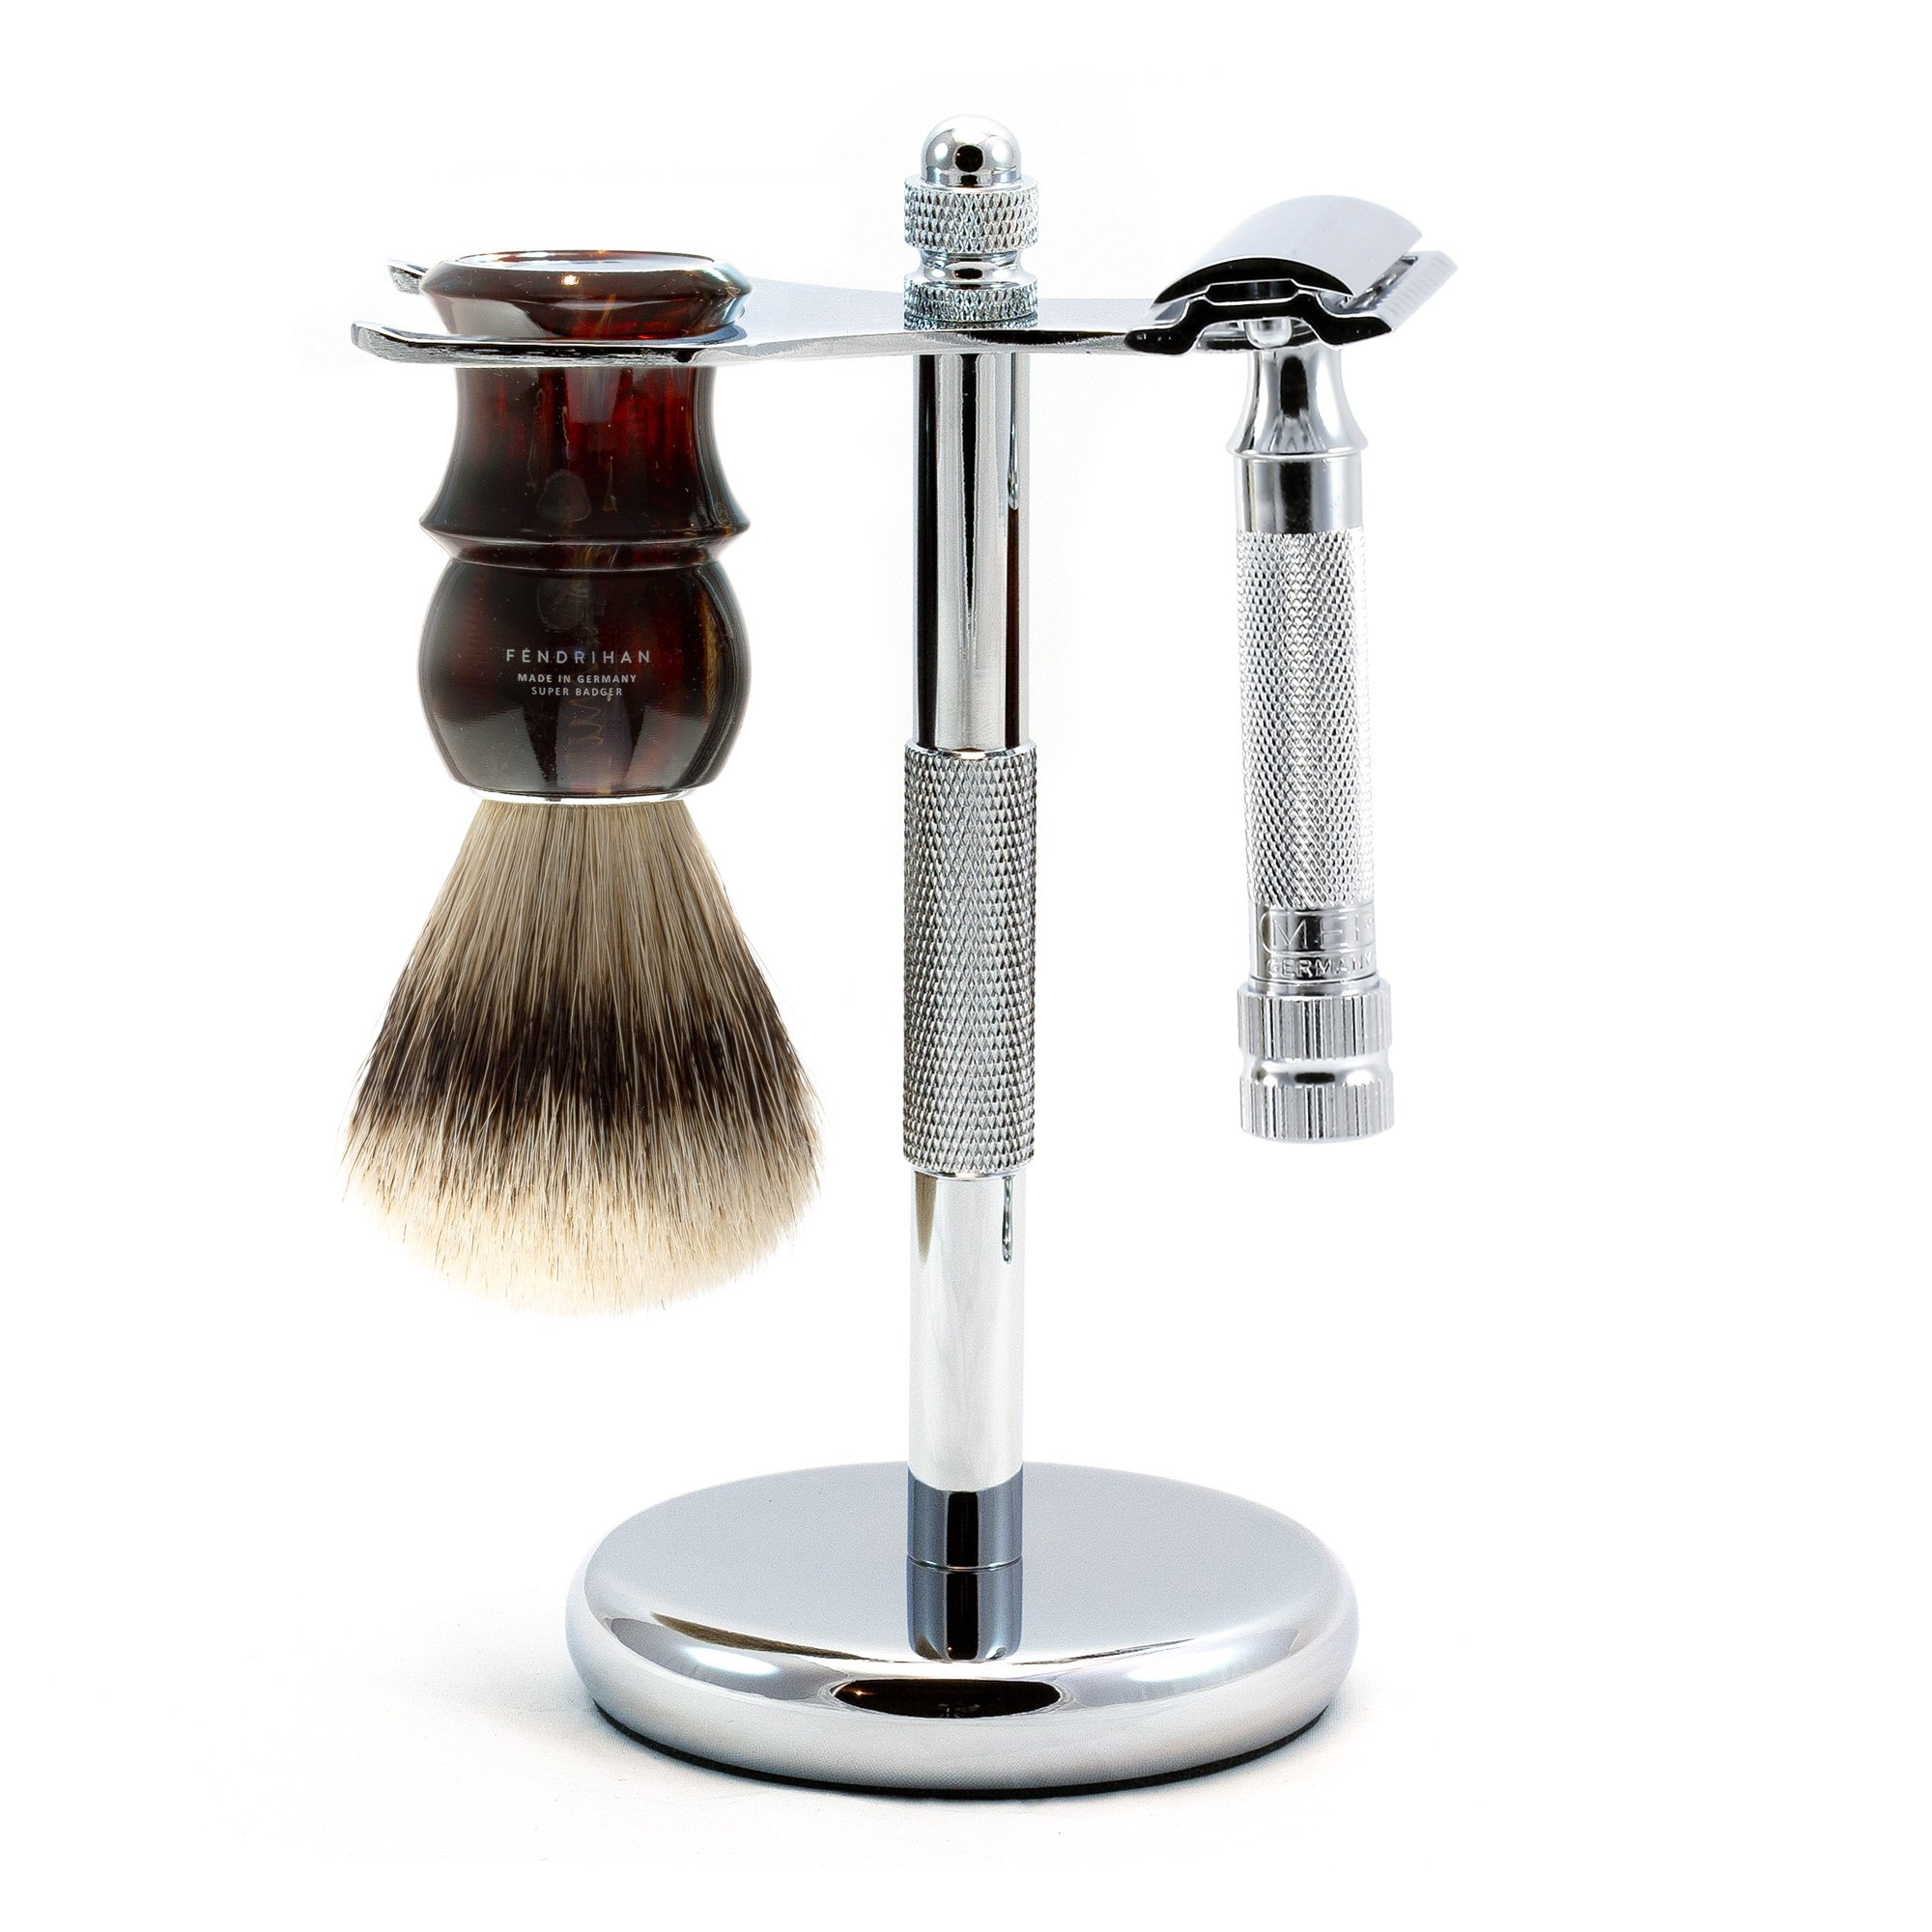 3-piece Shaving Set with Merkur 34c and Super Badger Brush, Made in Germany (Tortoise)